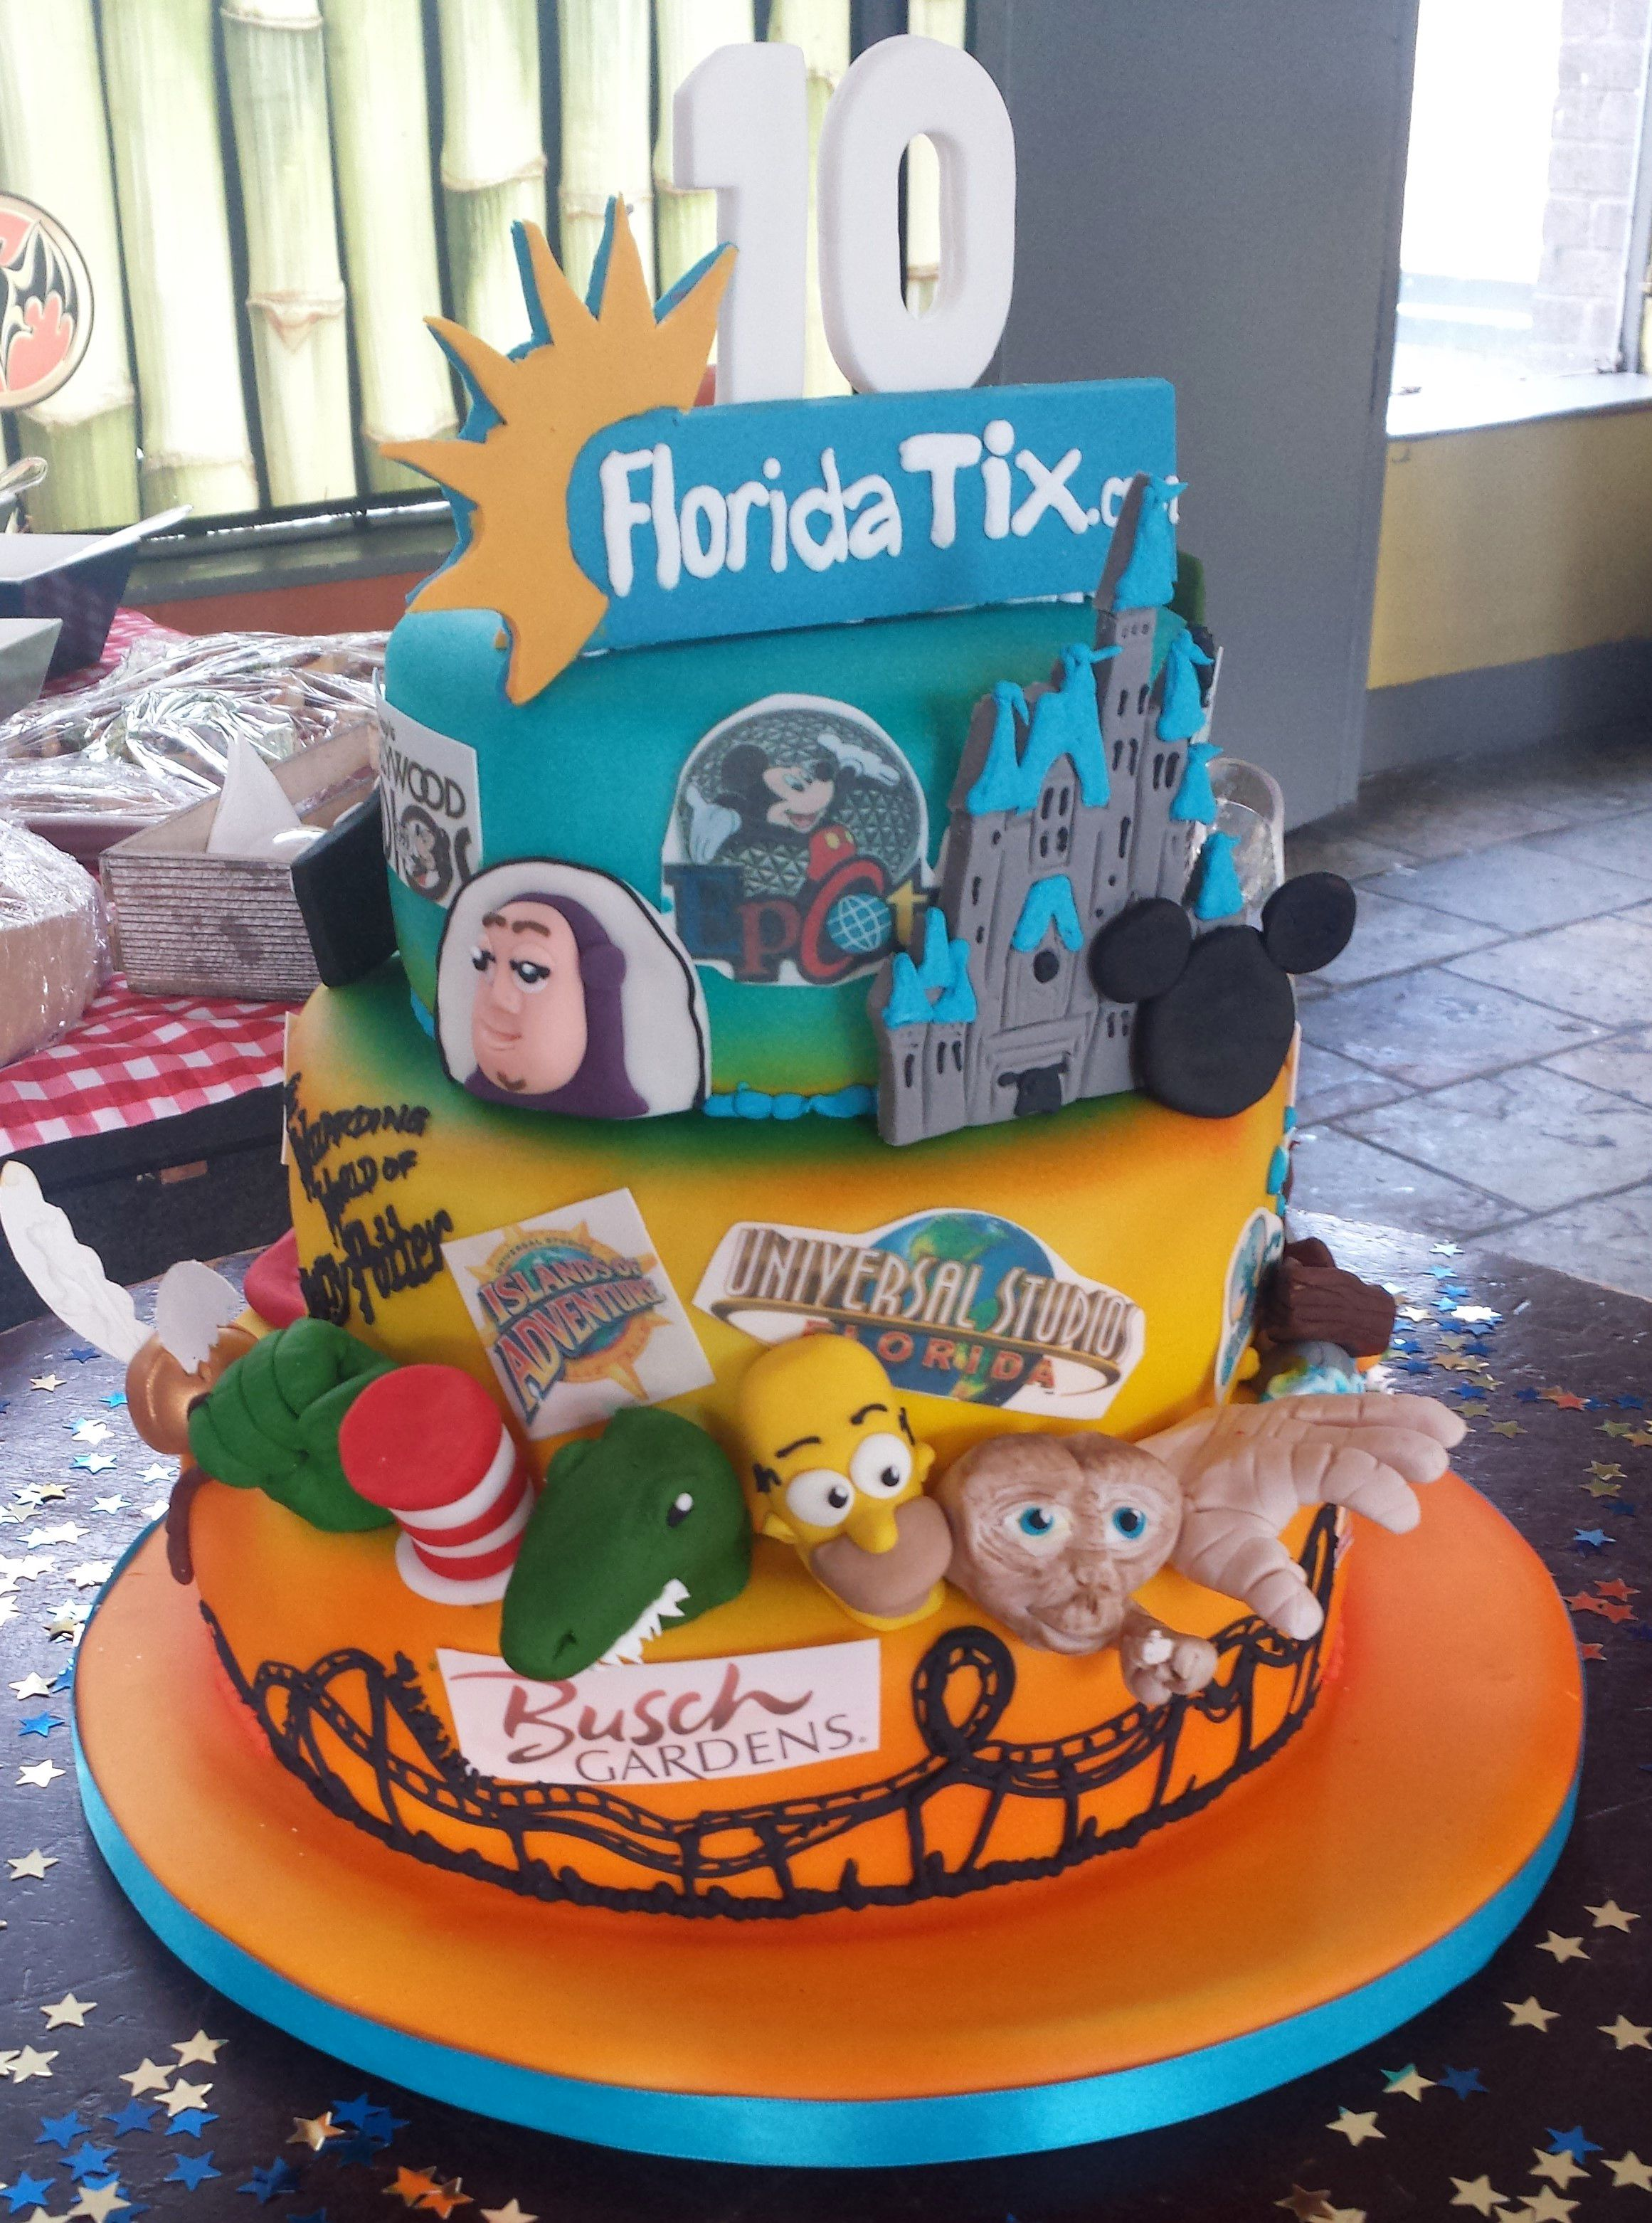 Best Birthday Cake Ever? #Florida #Orlando #DisneyWorld